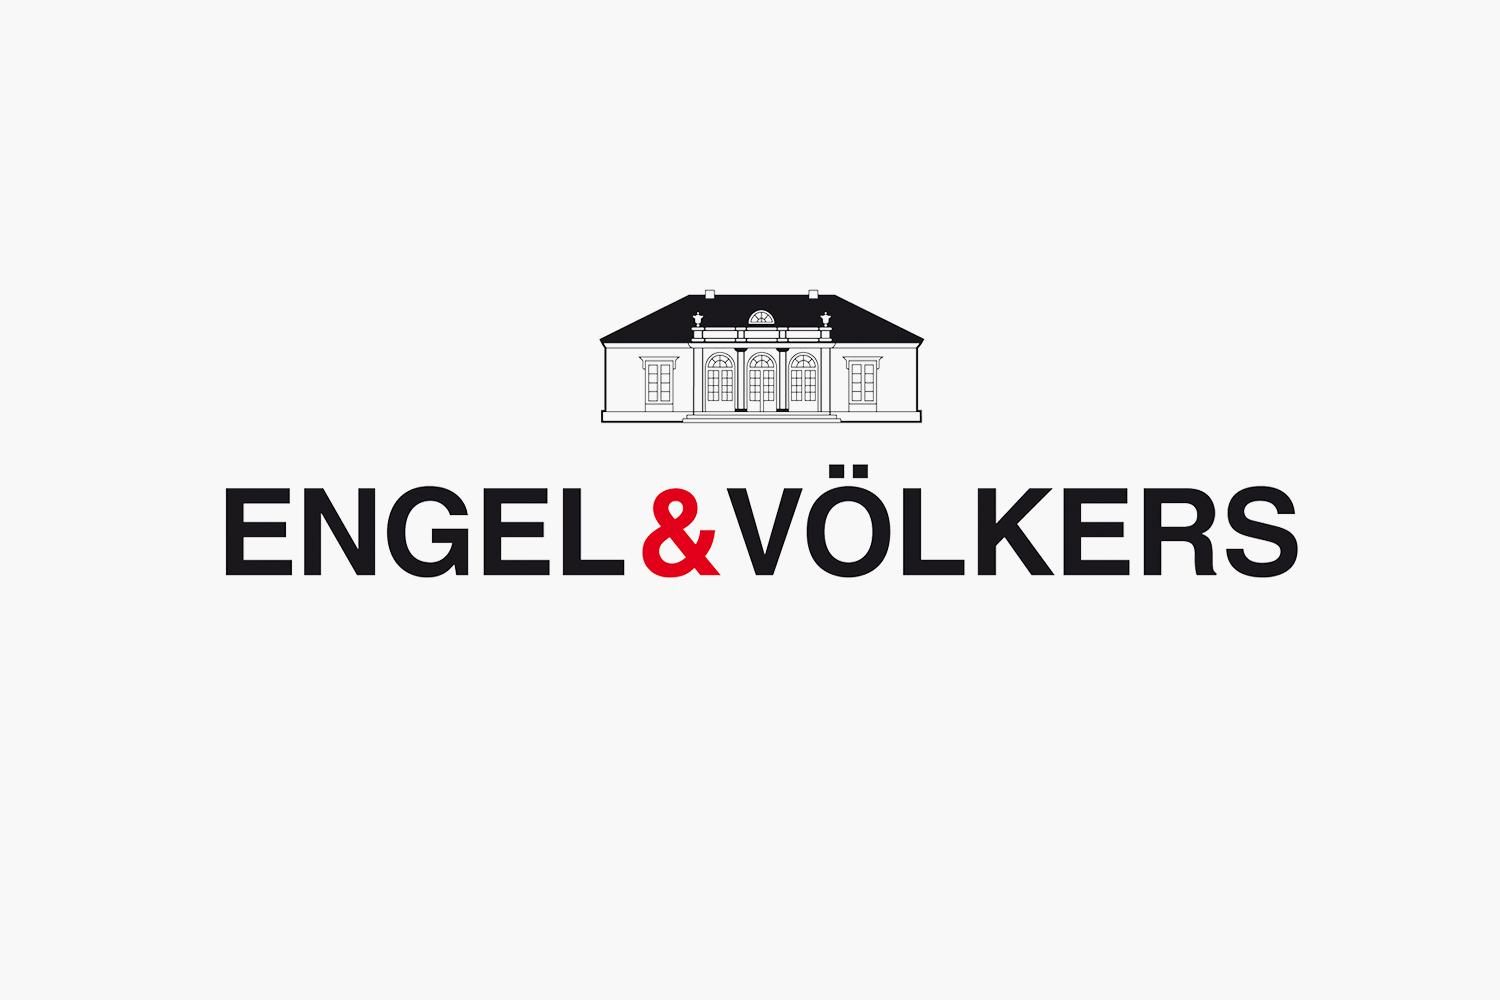 Online Marketing for Engel & Völkers Nordwestschweiz - Engel & Völkers is one of the world's leading service companies specialised in the brokerage of premium residential property, commercial real estate, yachts and aircraft. onlineKarma works with Engel & Völkers Nordwestschweiz to improve the online presence and conversions.